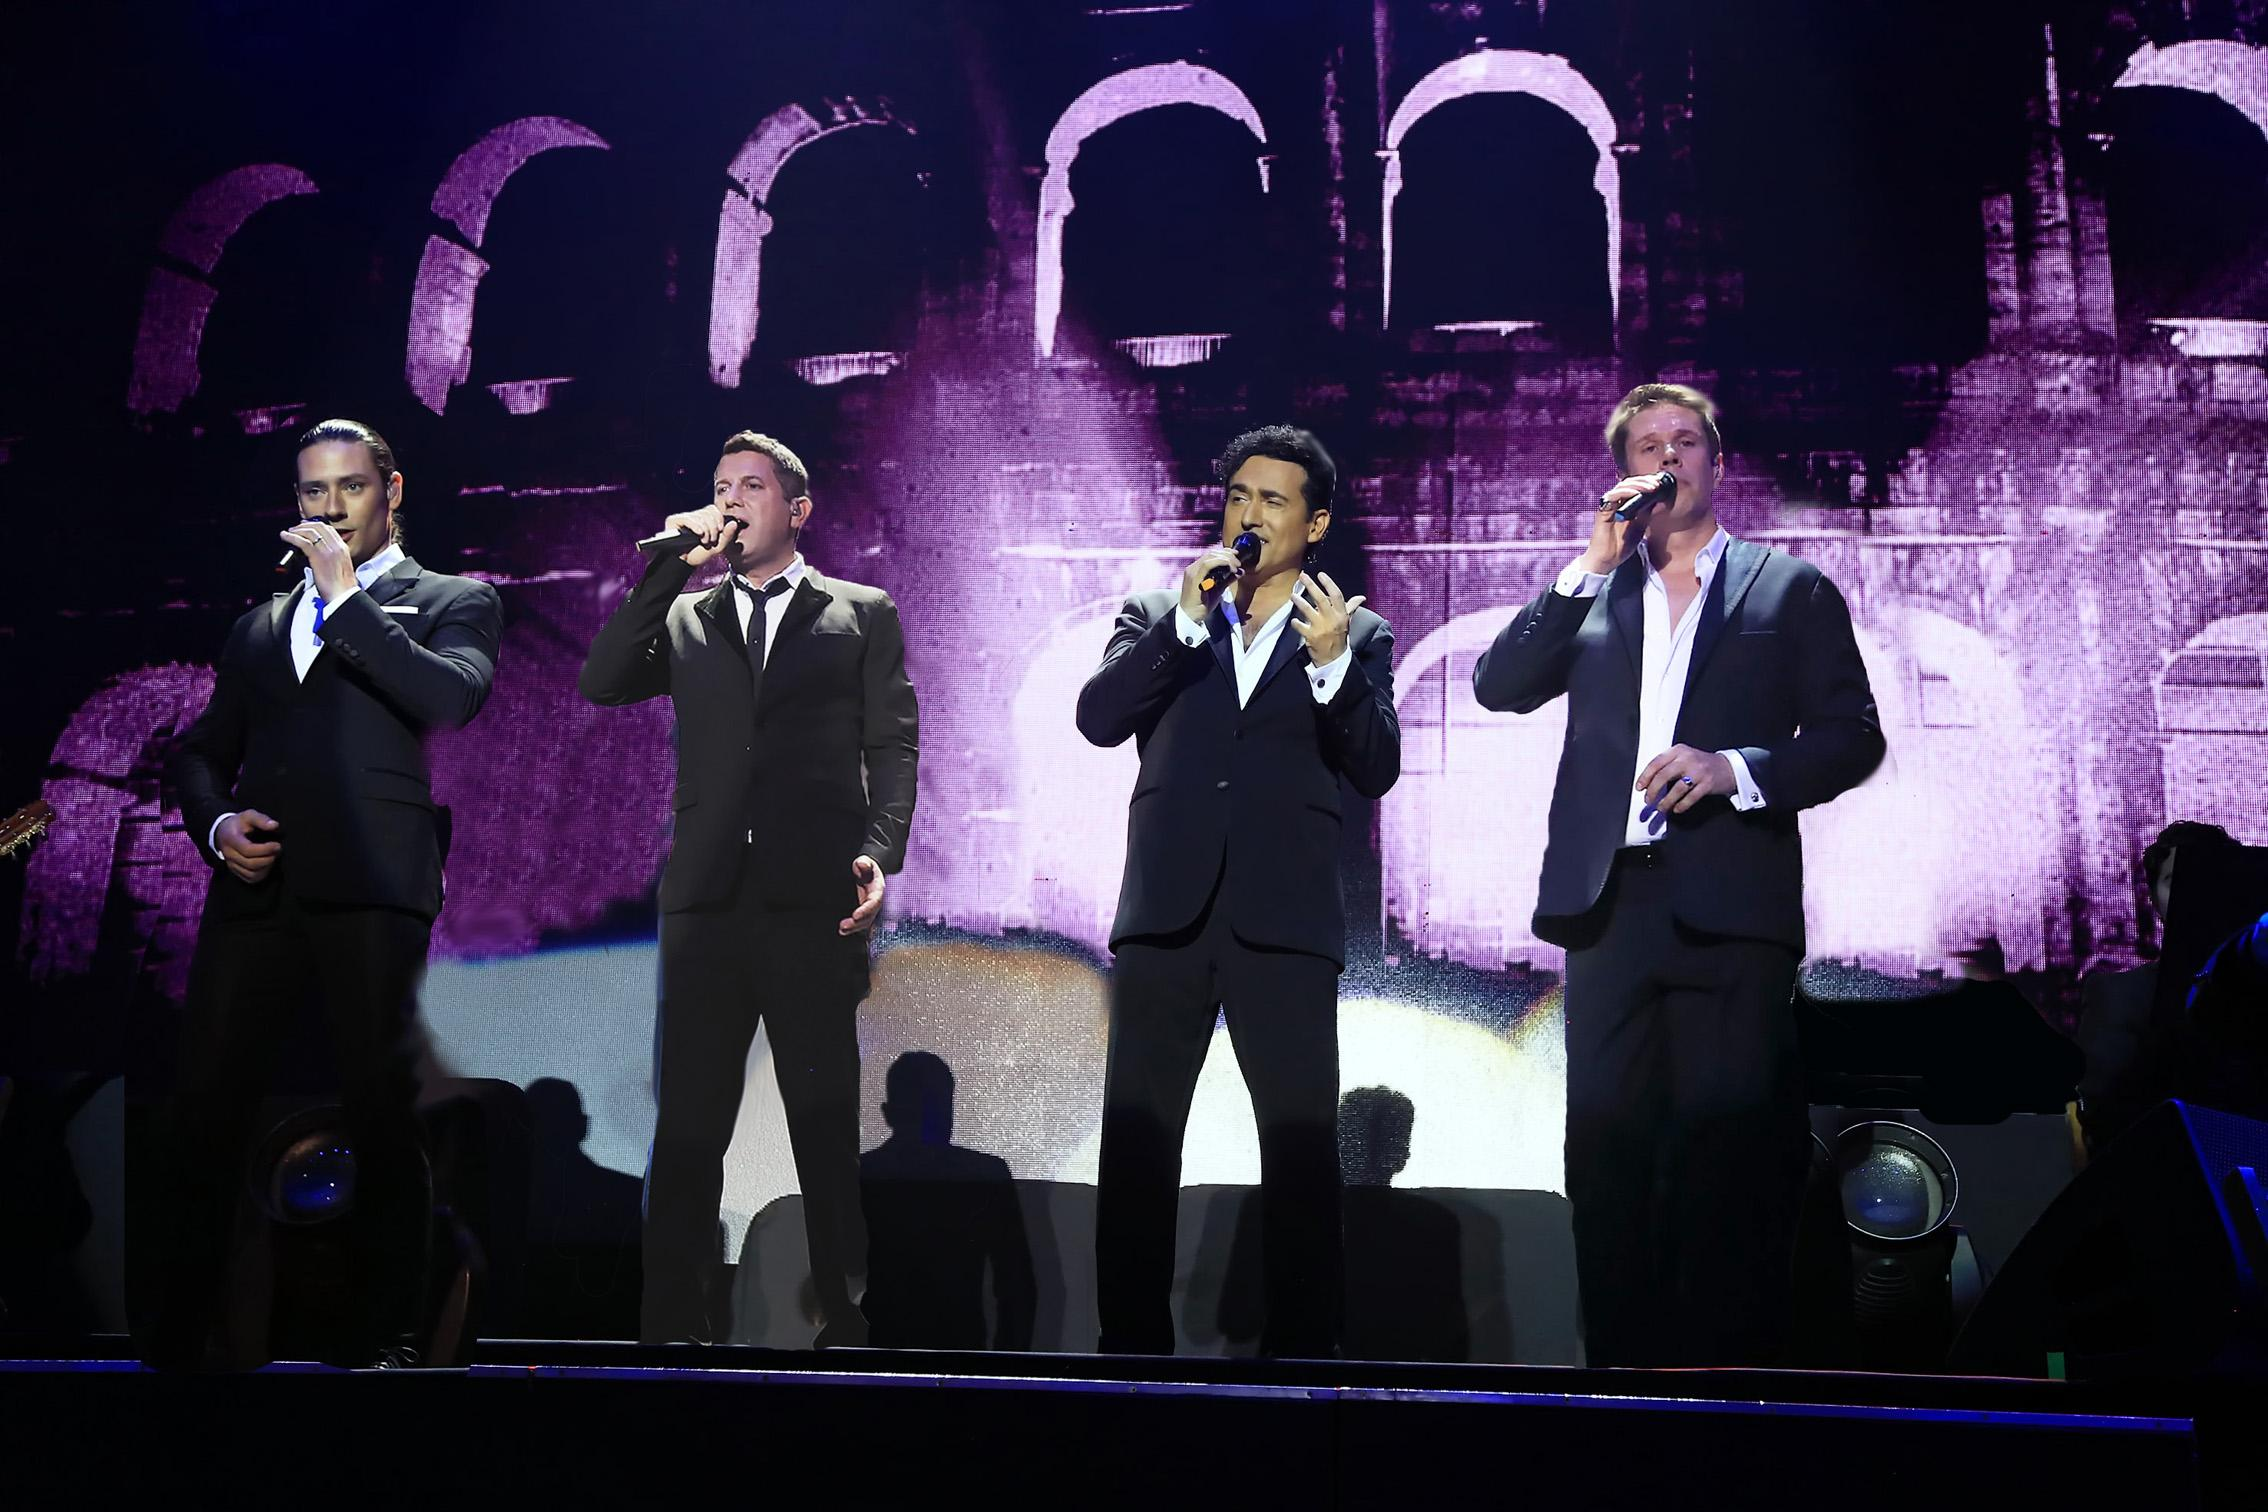 Picture of Il Divo on stage